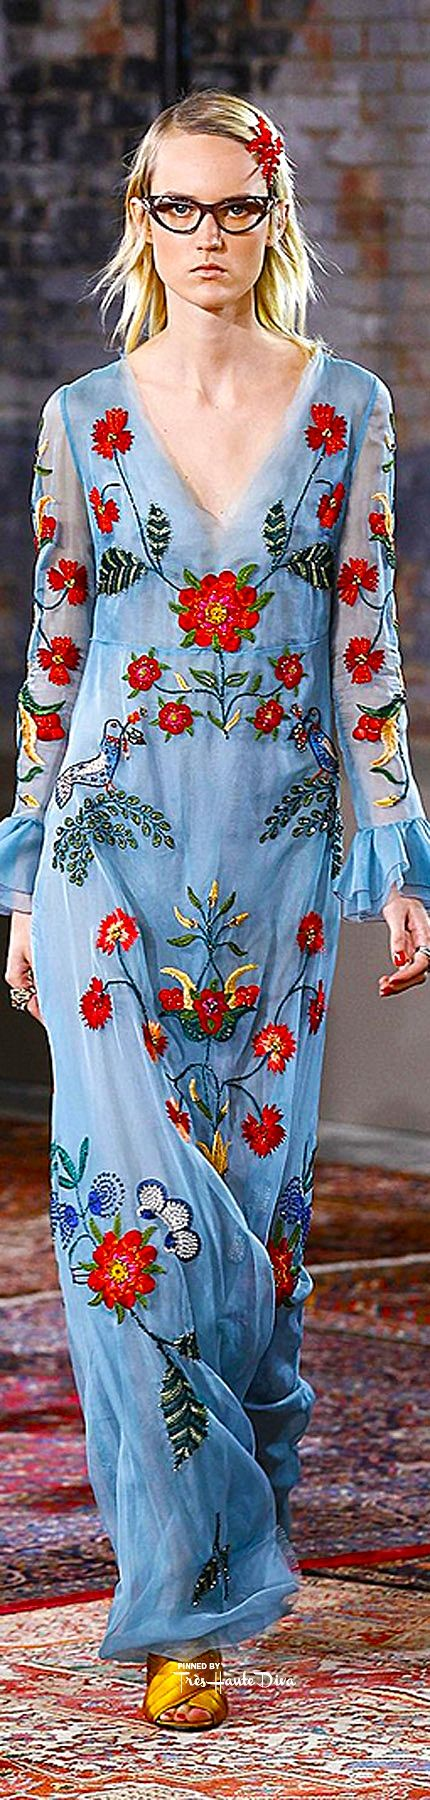 17 best images about gucci on pinterest tom ford - Sofia gucci diva ...